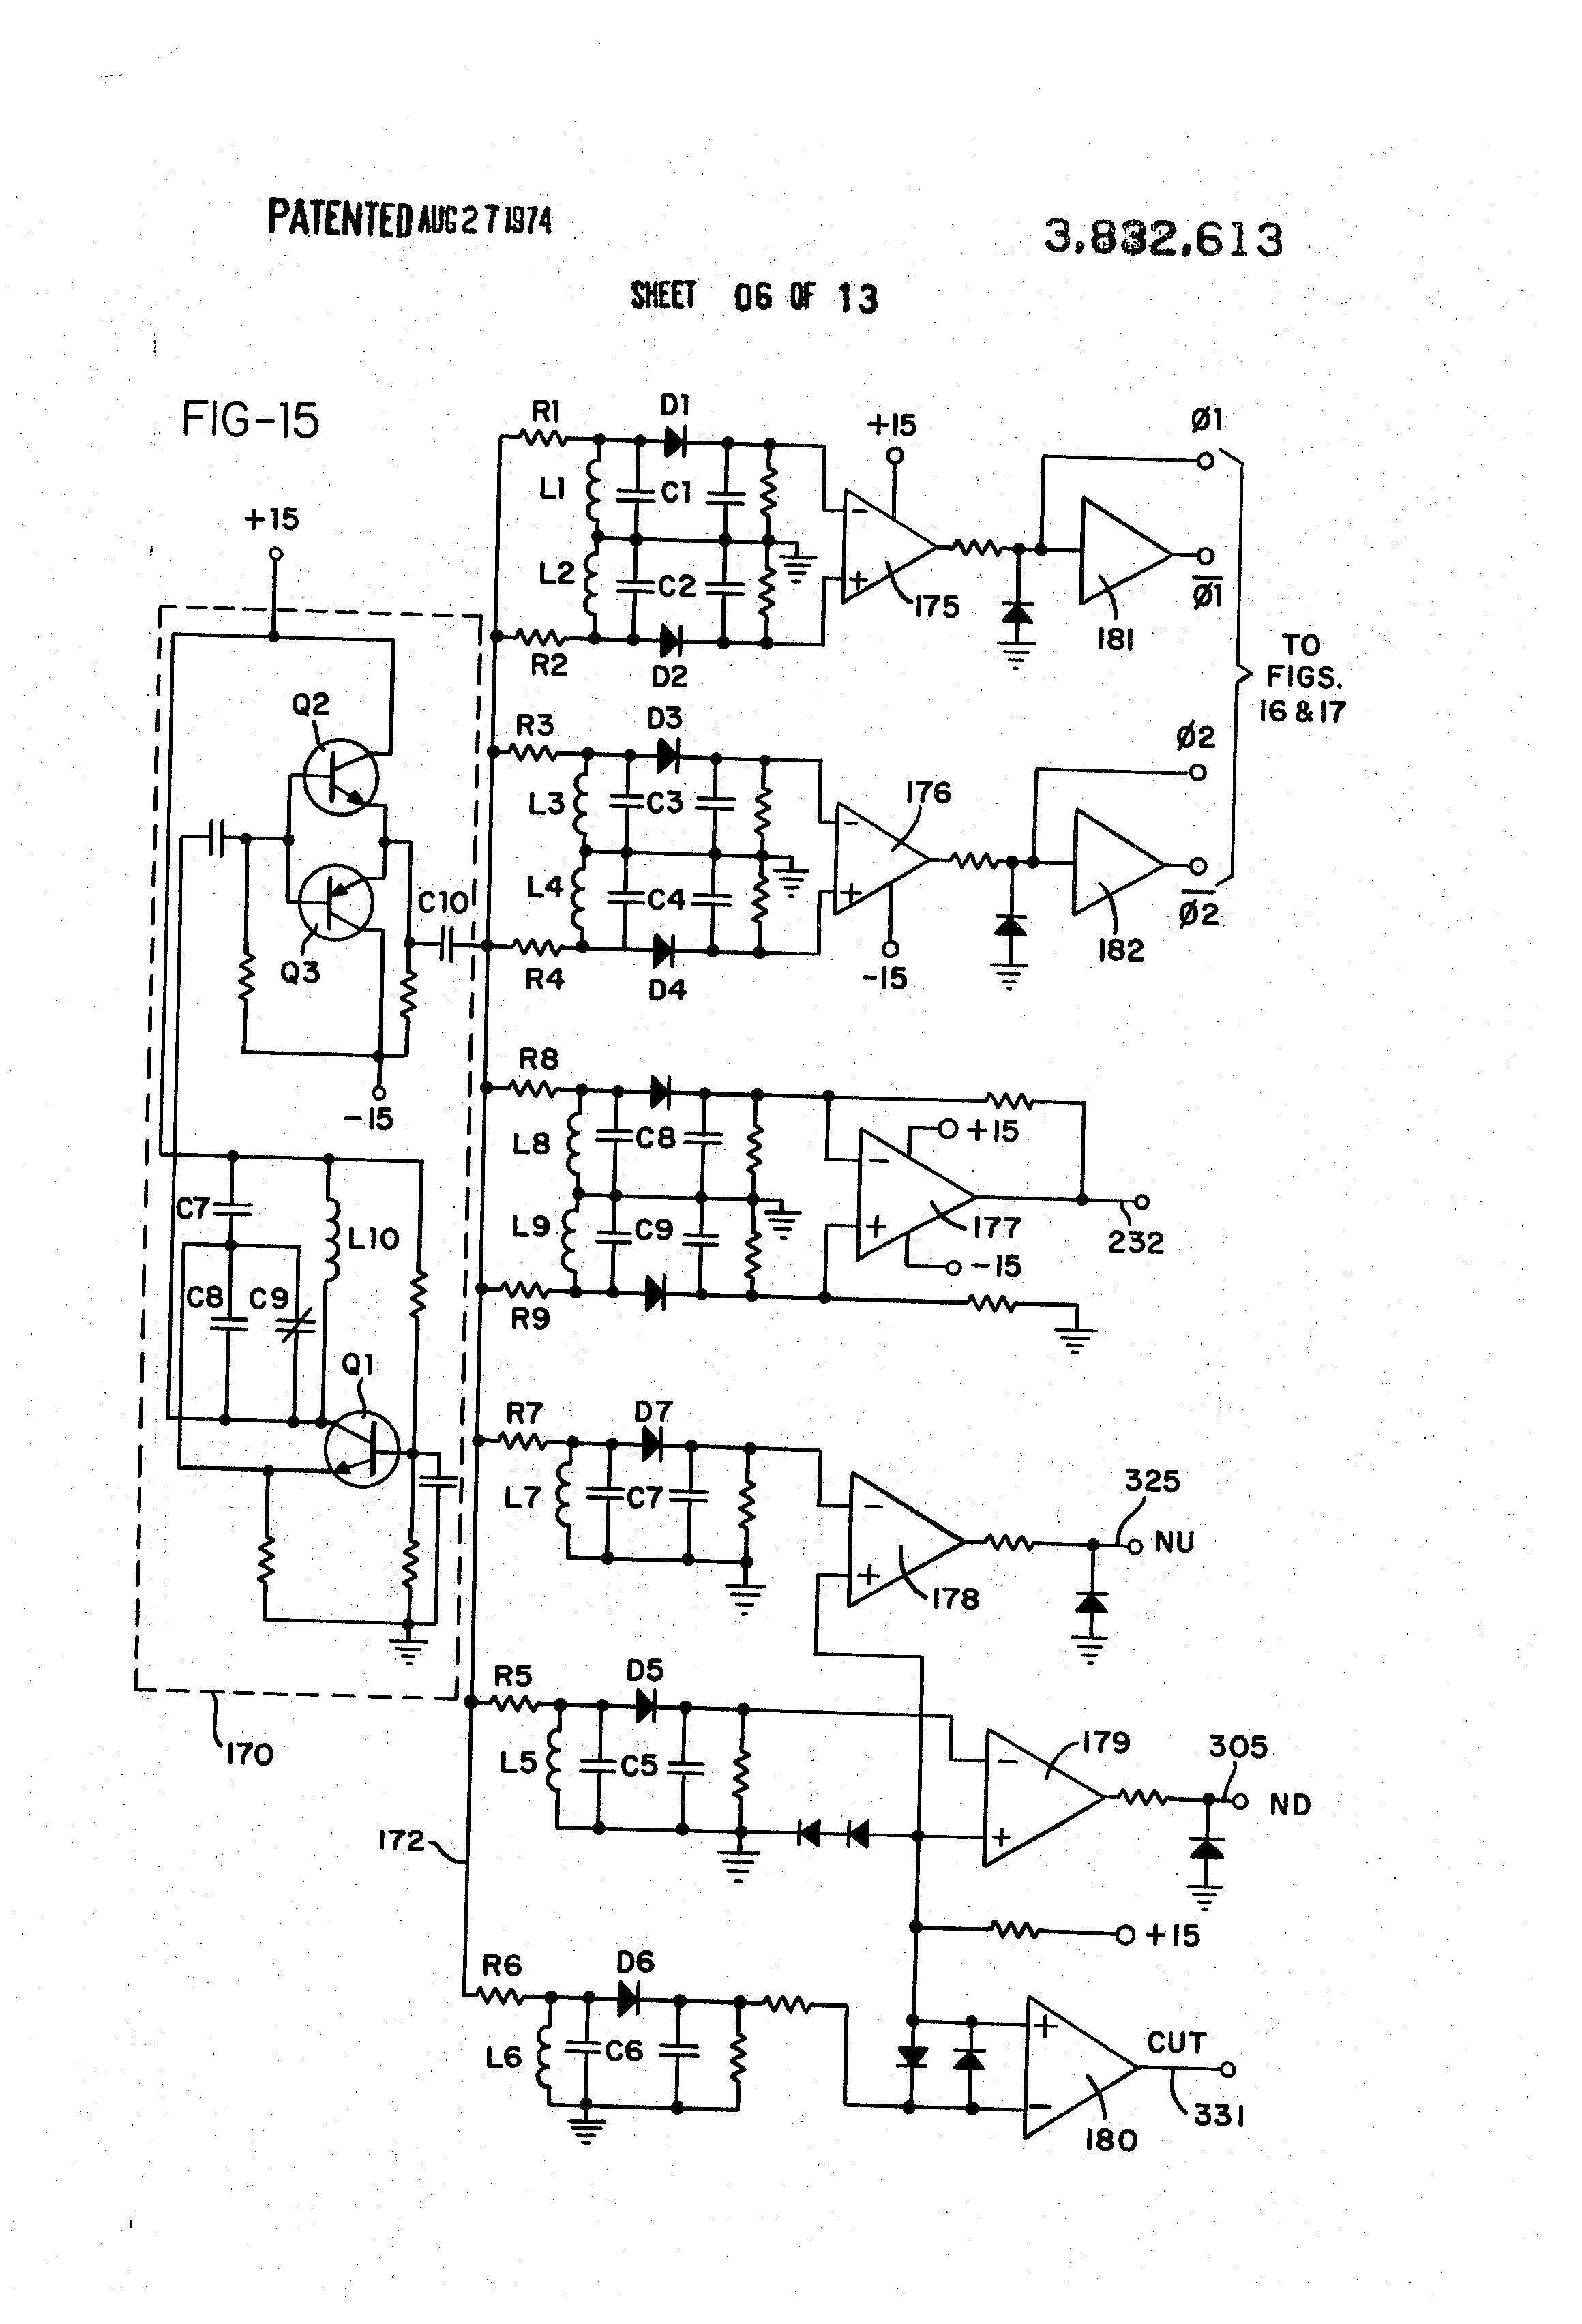 Sewing Machine Foot Pedal Circuit Diagram 41 Wiring Images Index 20 Filter Basic Seekic Us3832613 6 Patent Motor And Control